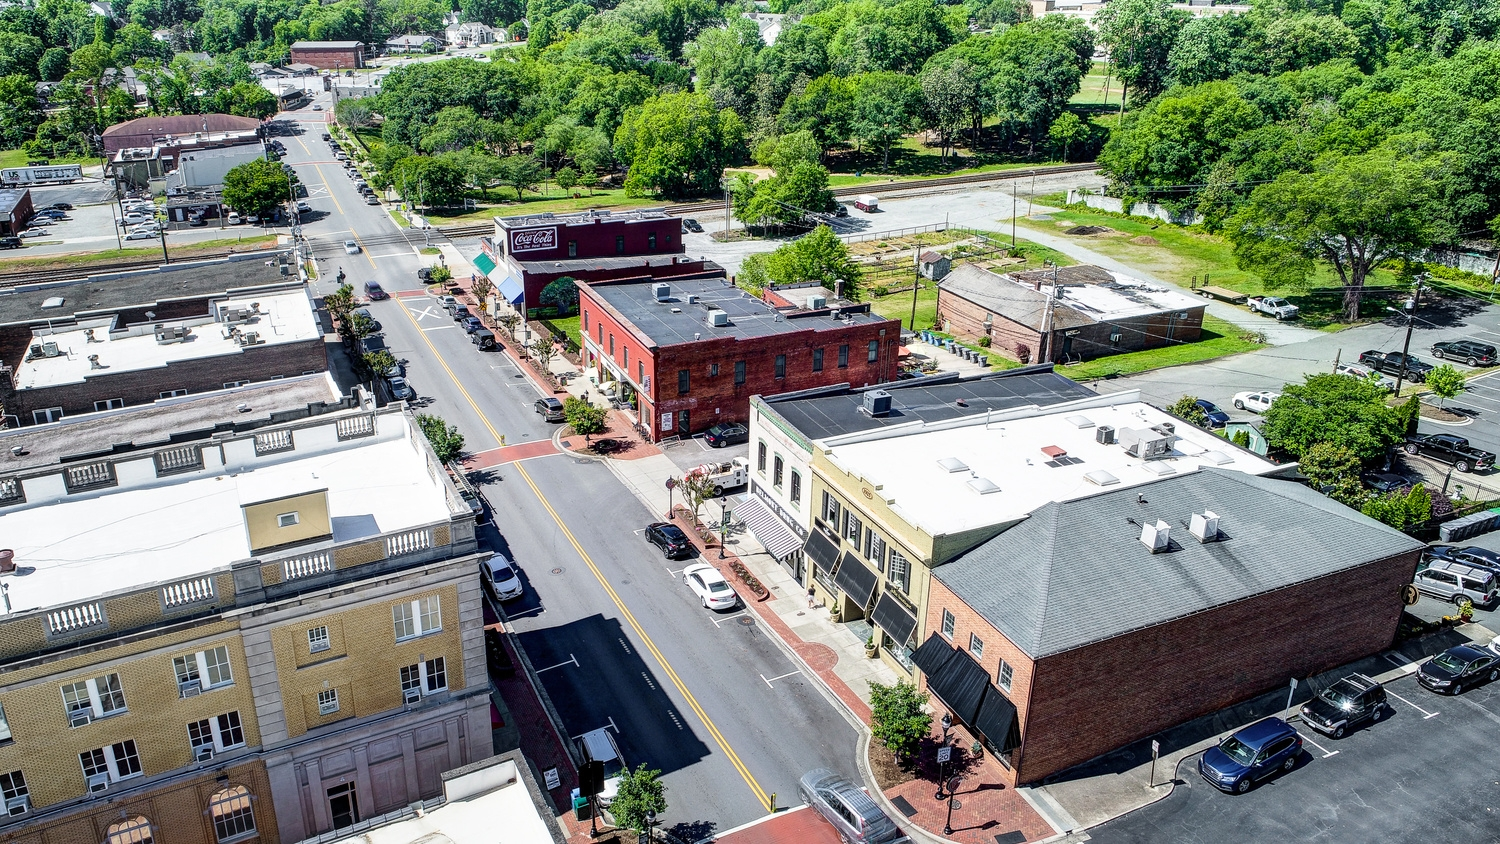 Laurel Walk Downtown Belmont 2 Drone